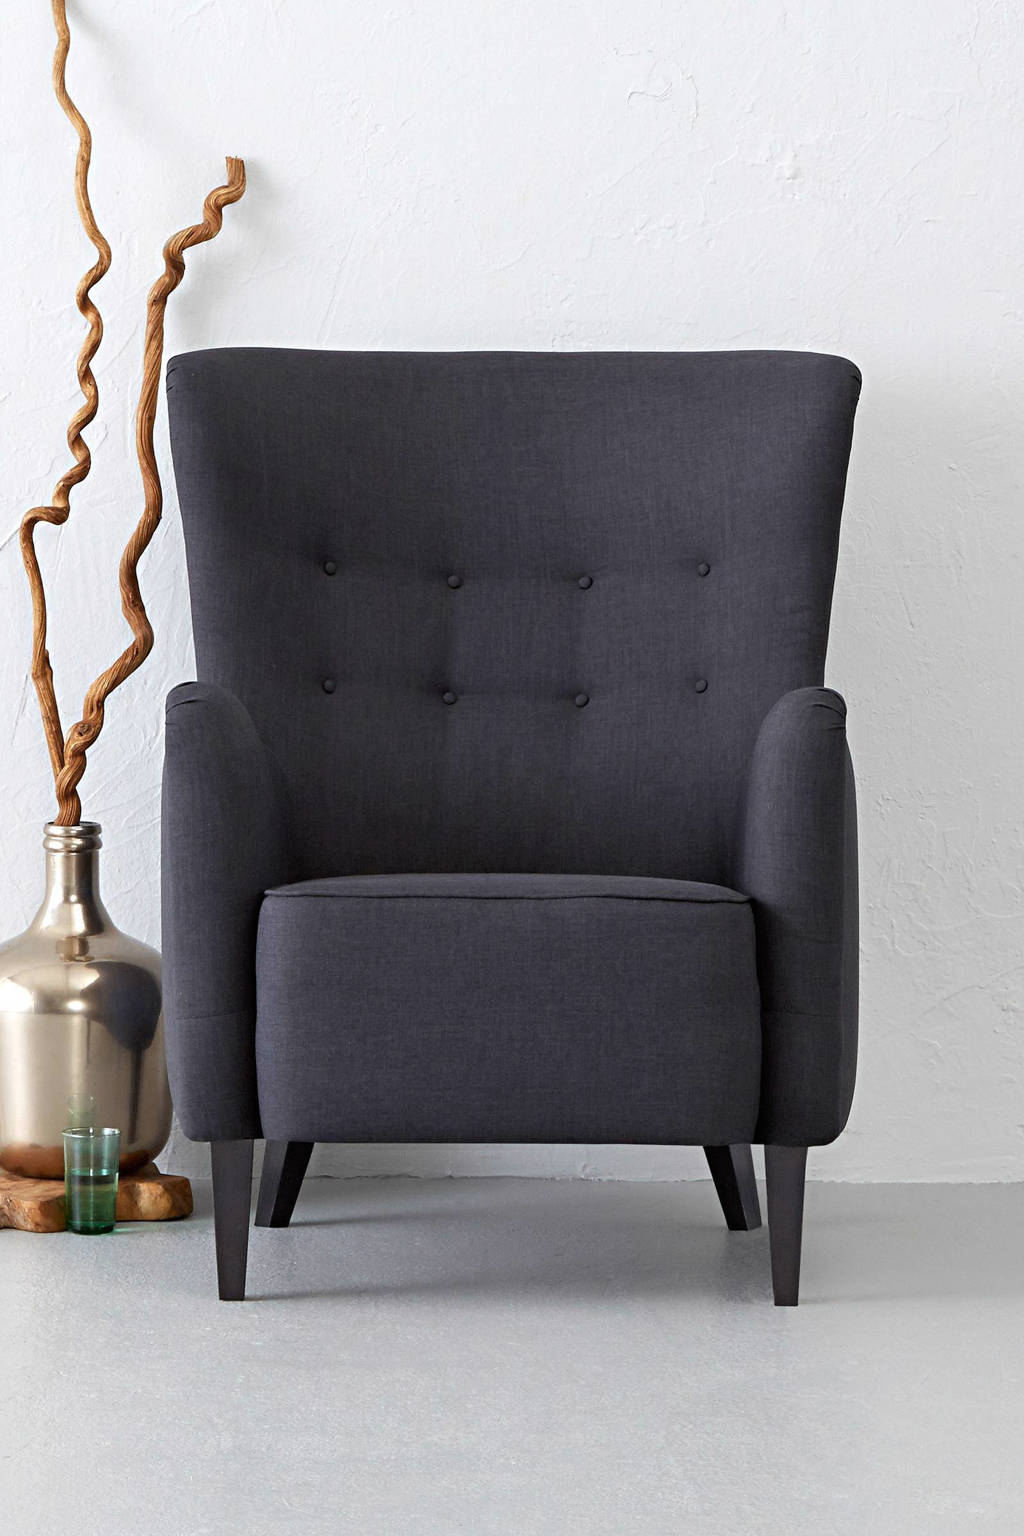 whkmp's own fauteuil York, Antraciet